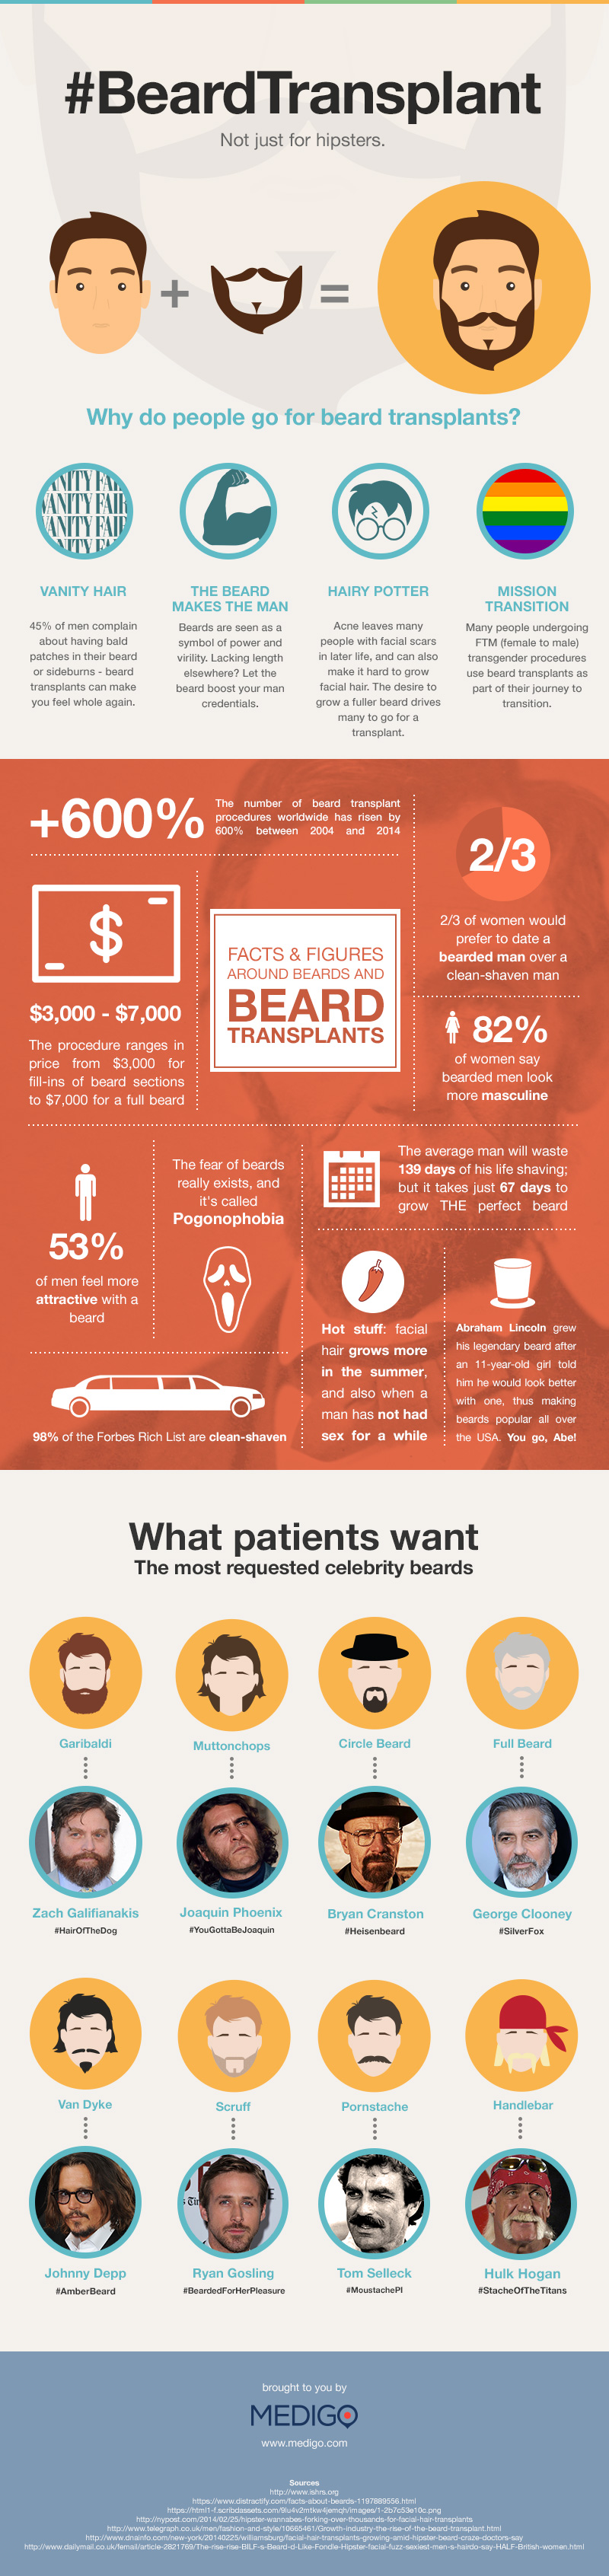 What is a Beard Transplant?